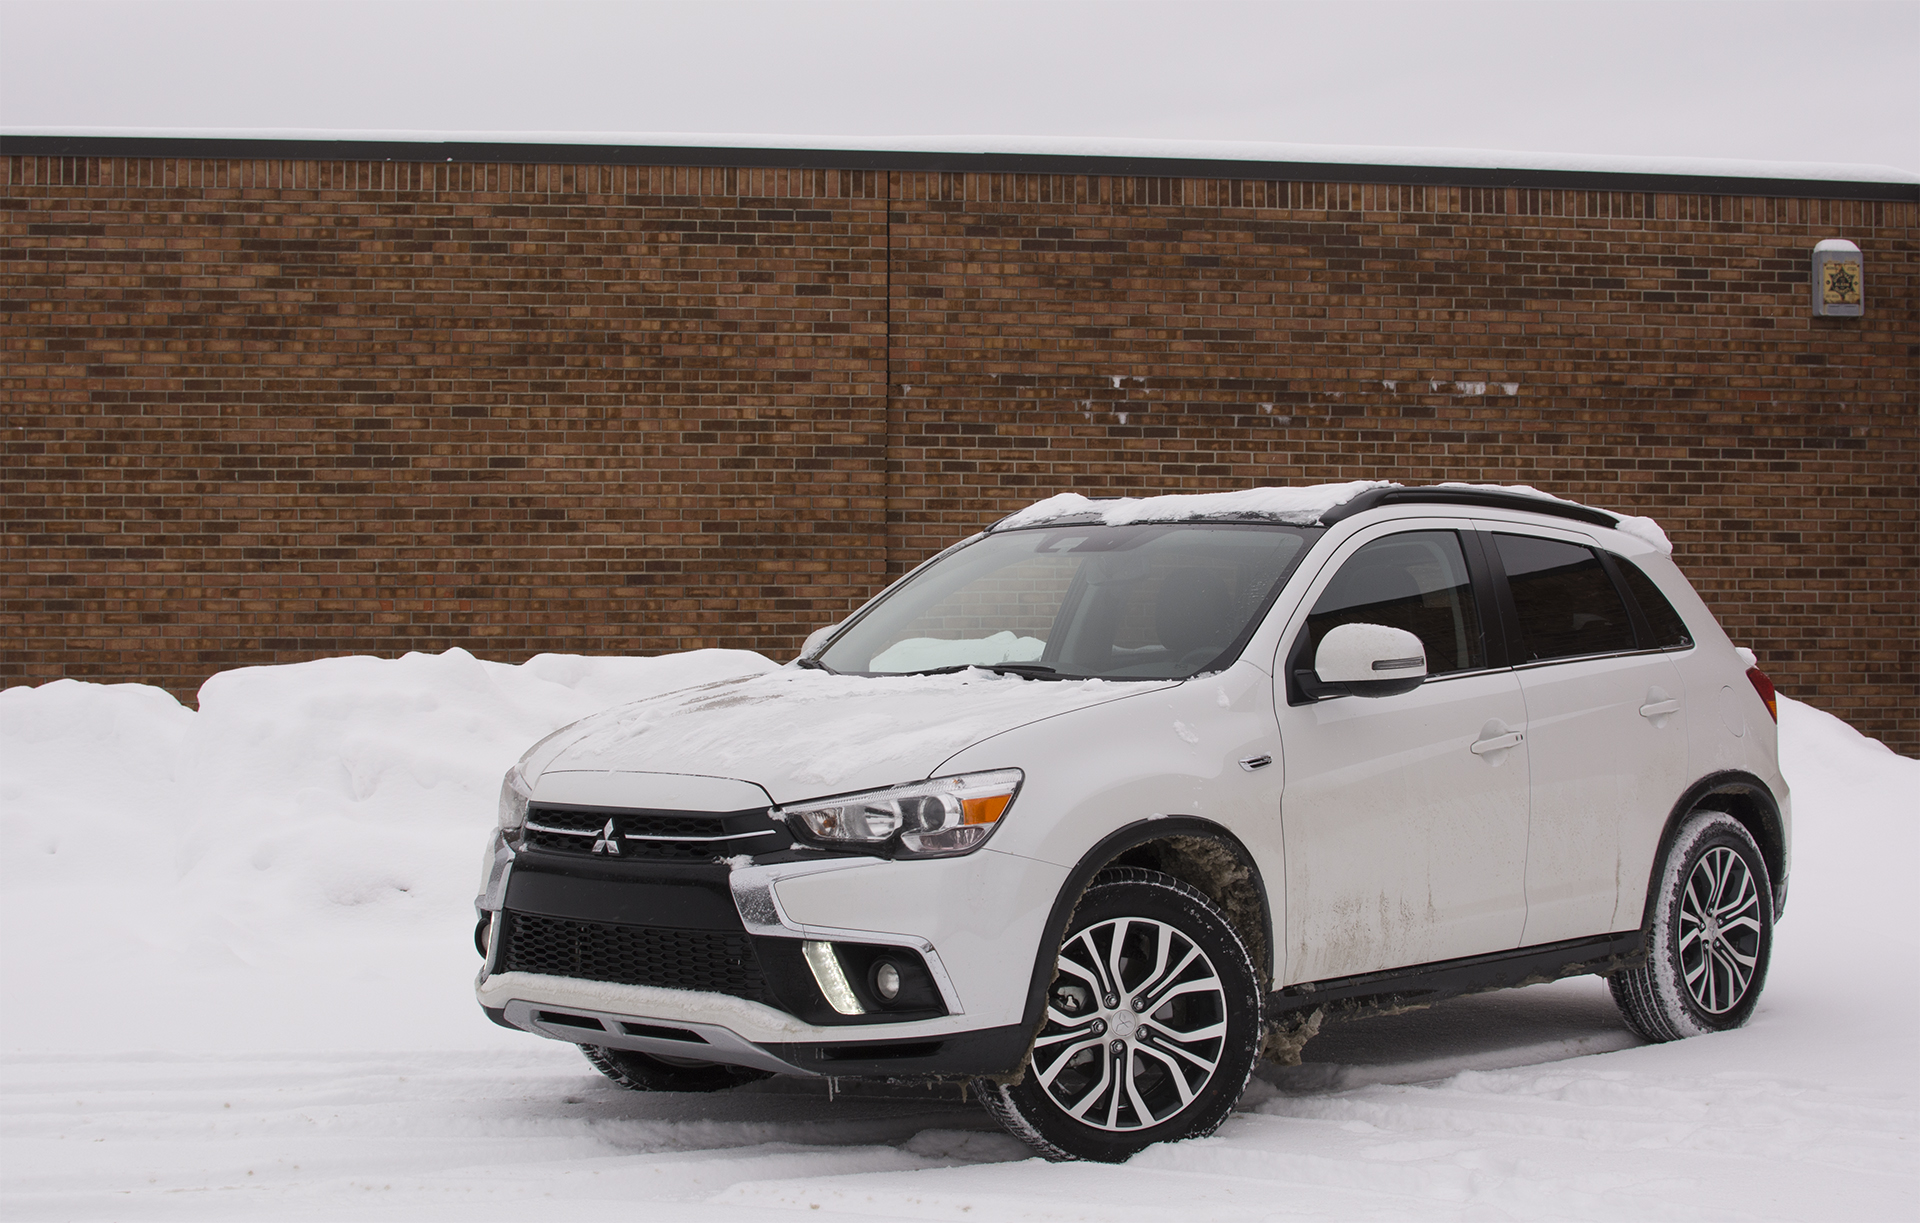 Used Mitsubishi Outlander Sport >> Review: Disappointing 2018 Mitsubishi Outlander Sport Needs Help ASAP